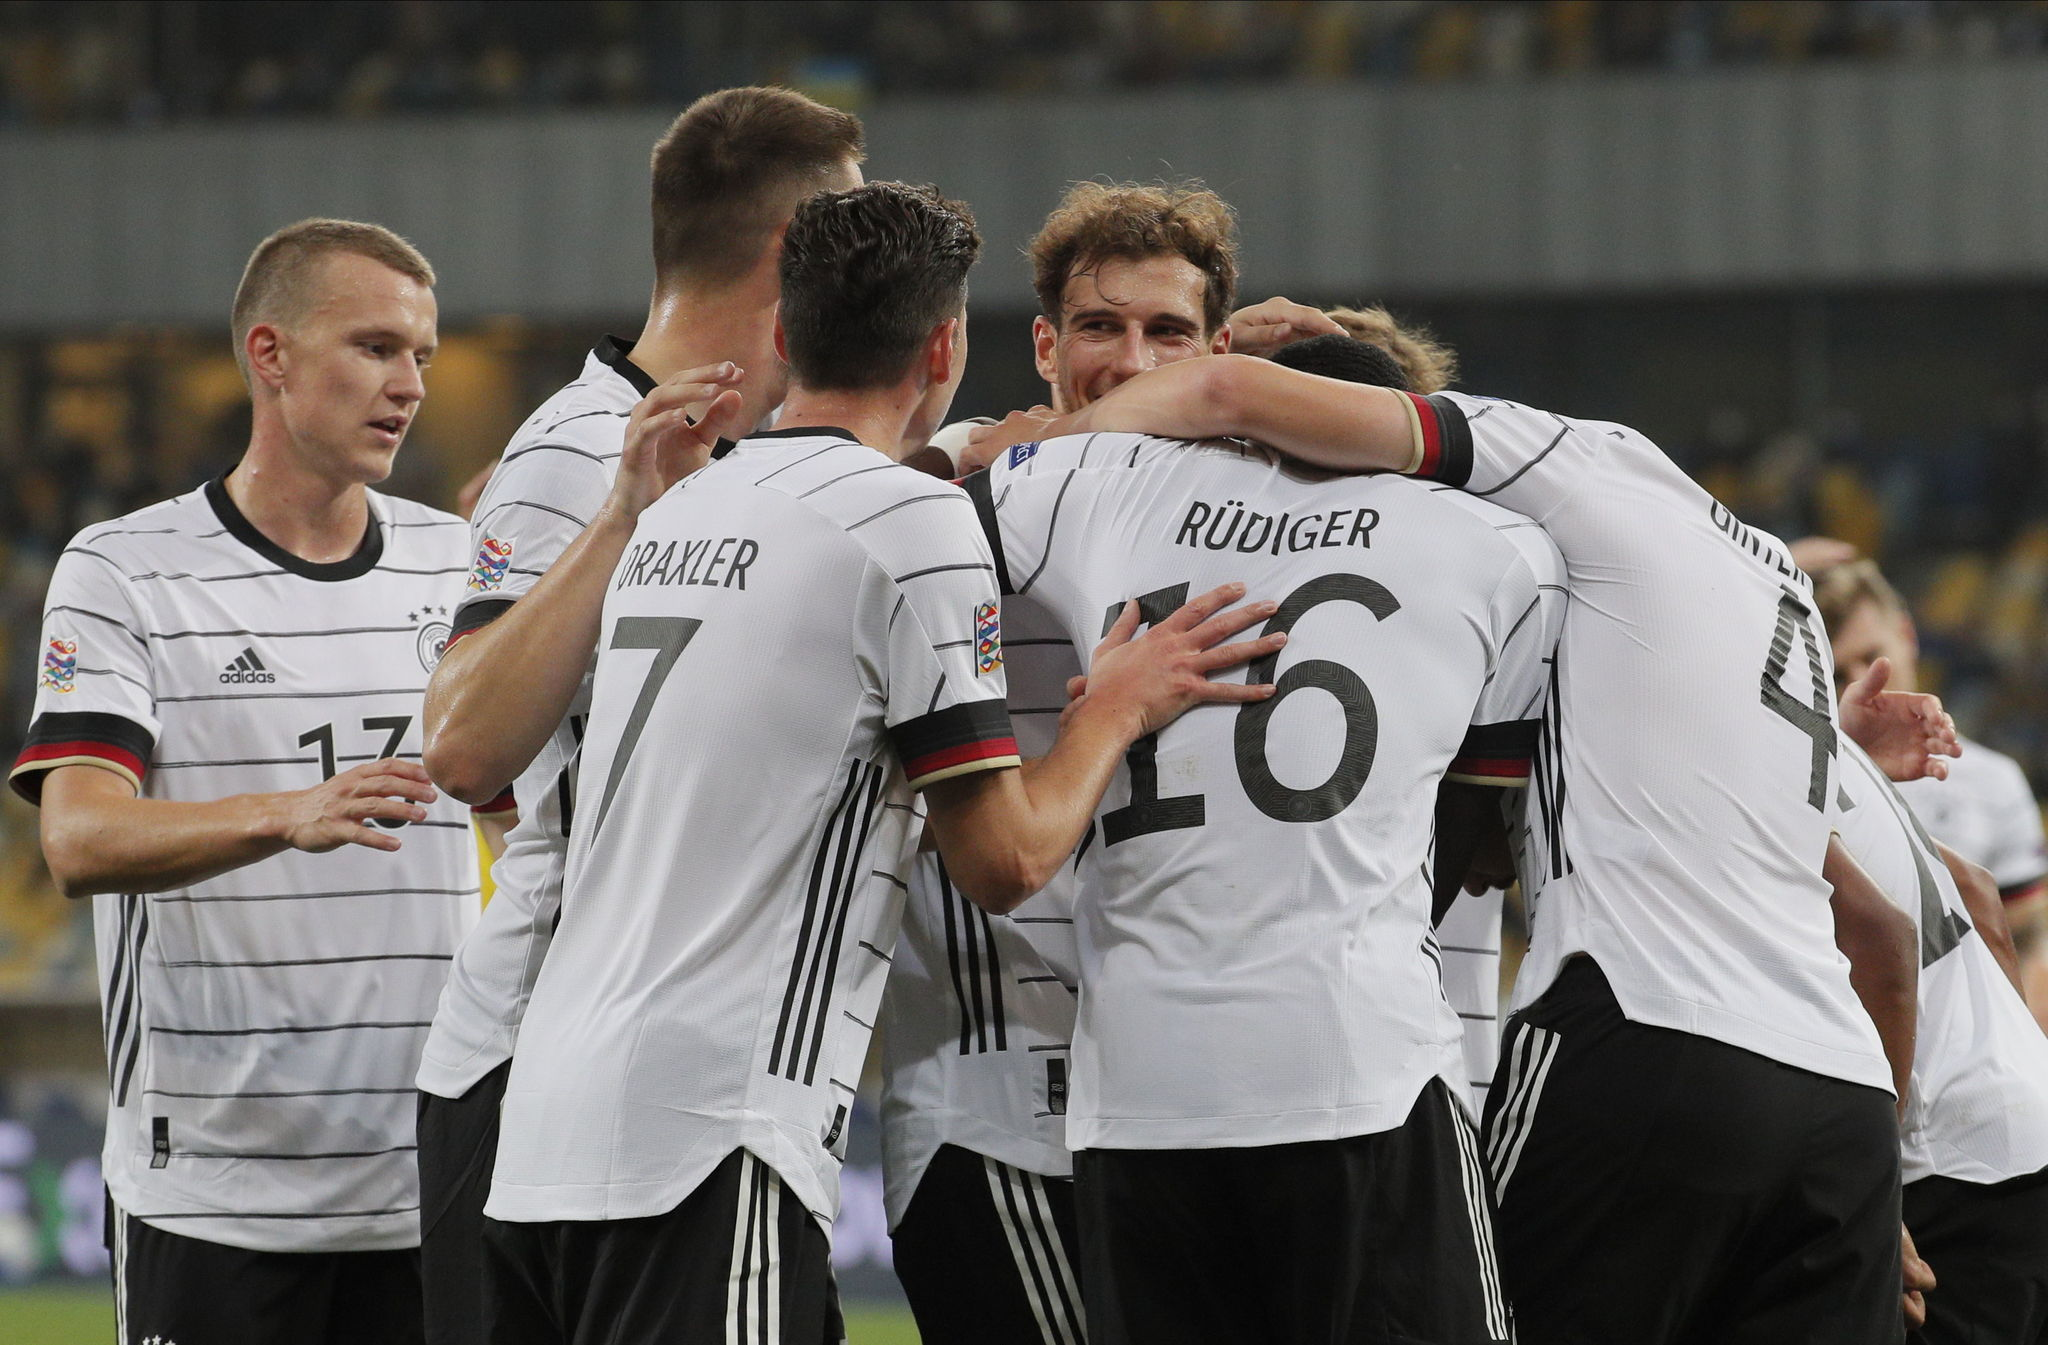 Kiev (Ukraine), 10/10/2020.- Matthias lt;HIT gt;Ginter lt;/HIT gt; (R) of Germany celebrates with his teammates after scoring the opening goal during the UEFA Nations League group stage, league A, group 4 soccer match between Ukraine and Germany in Kiev, Ukraine, 10 October 2020. (Alemania, Ucrania) EFE/EPA/SERGEY DOLZHENKO